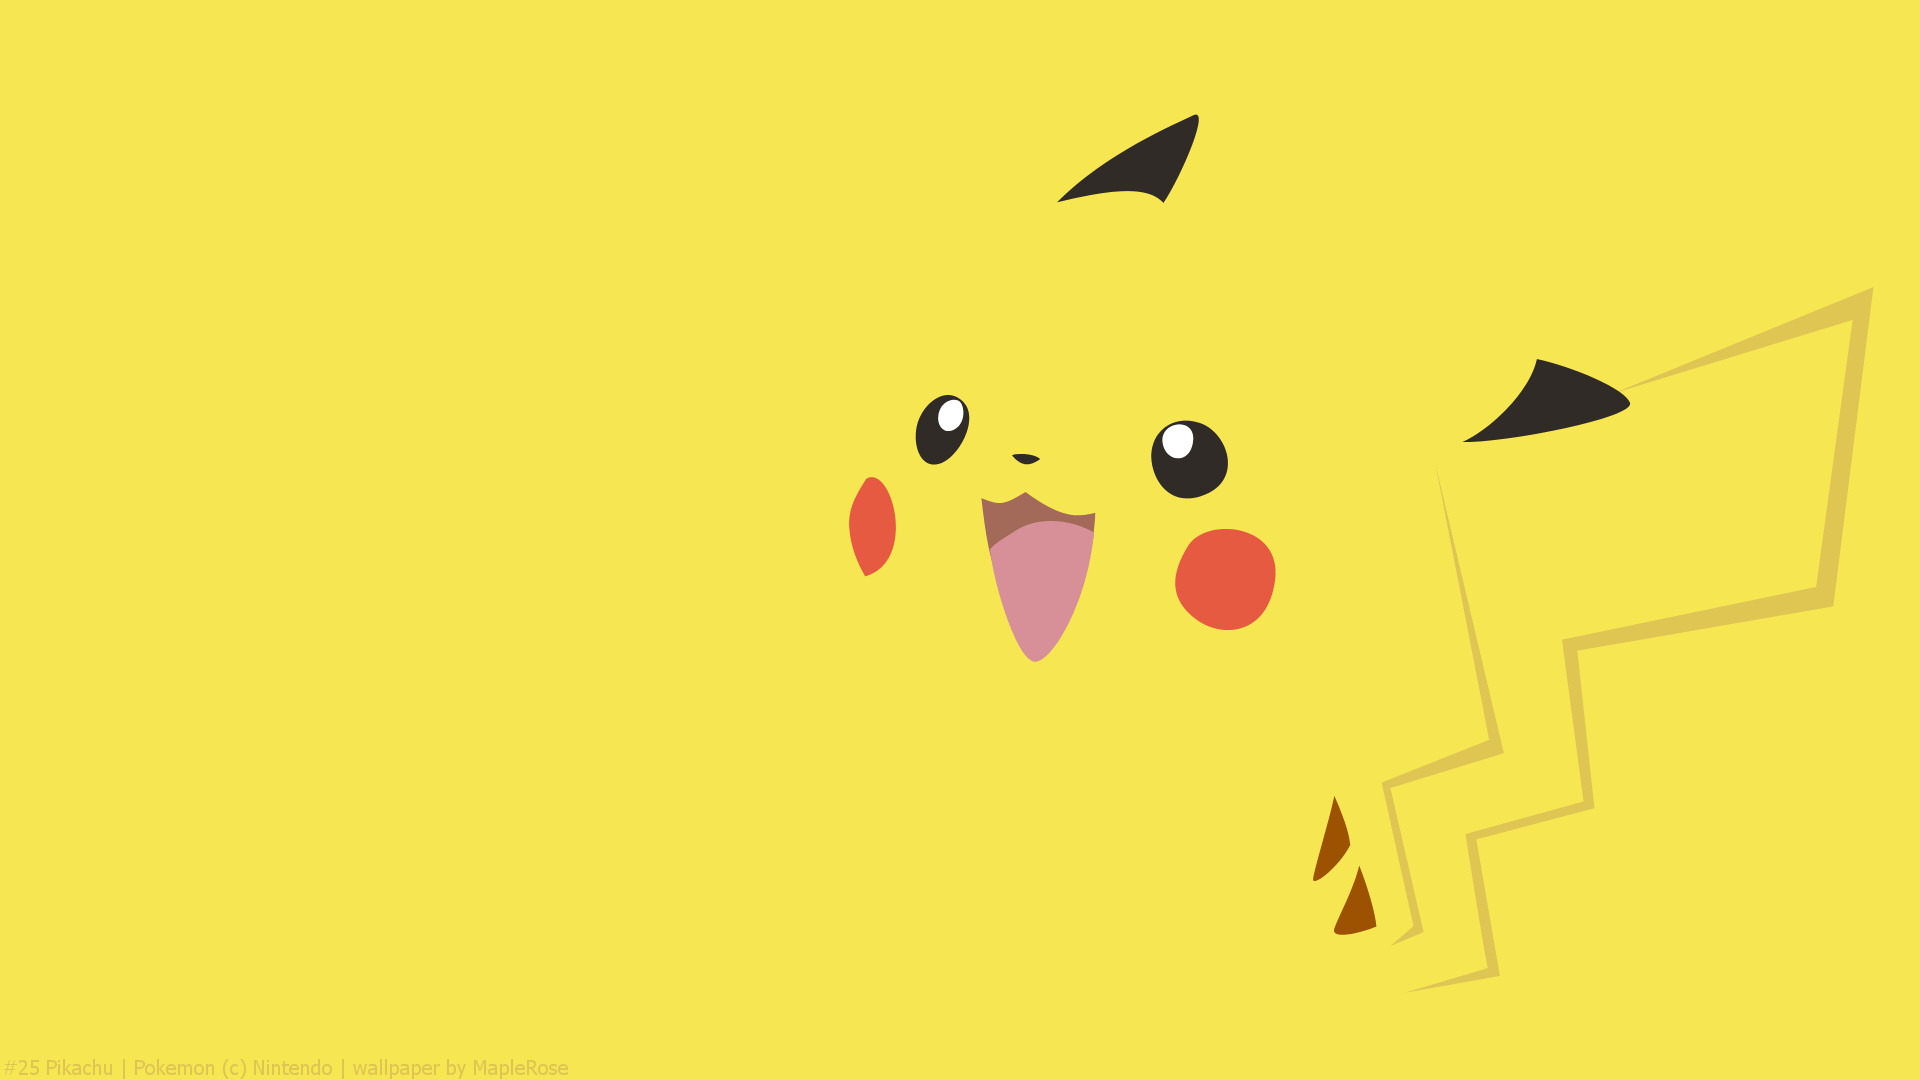 Pokemon Yellow Special Pikachu Edition Full HD Wallpaper And